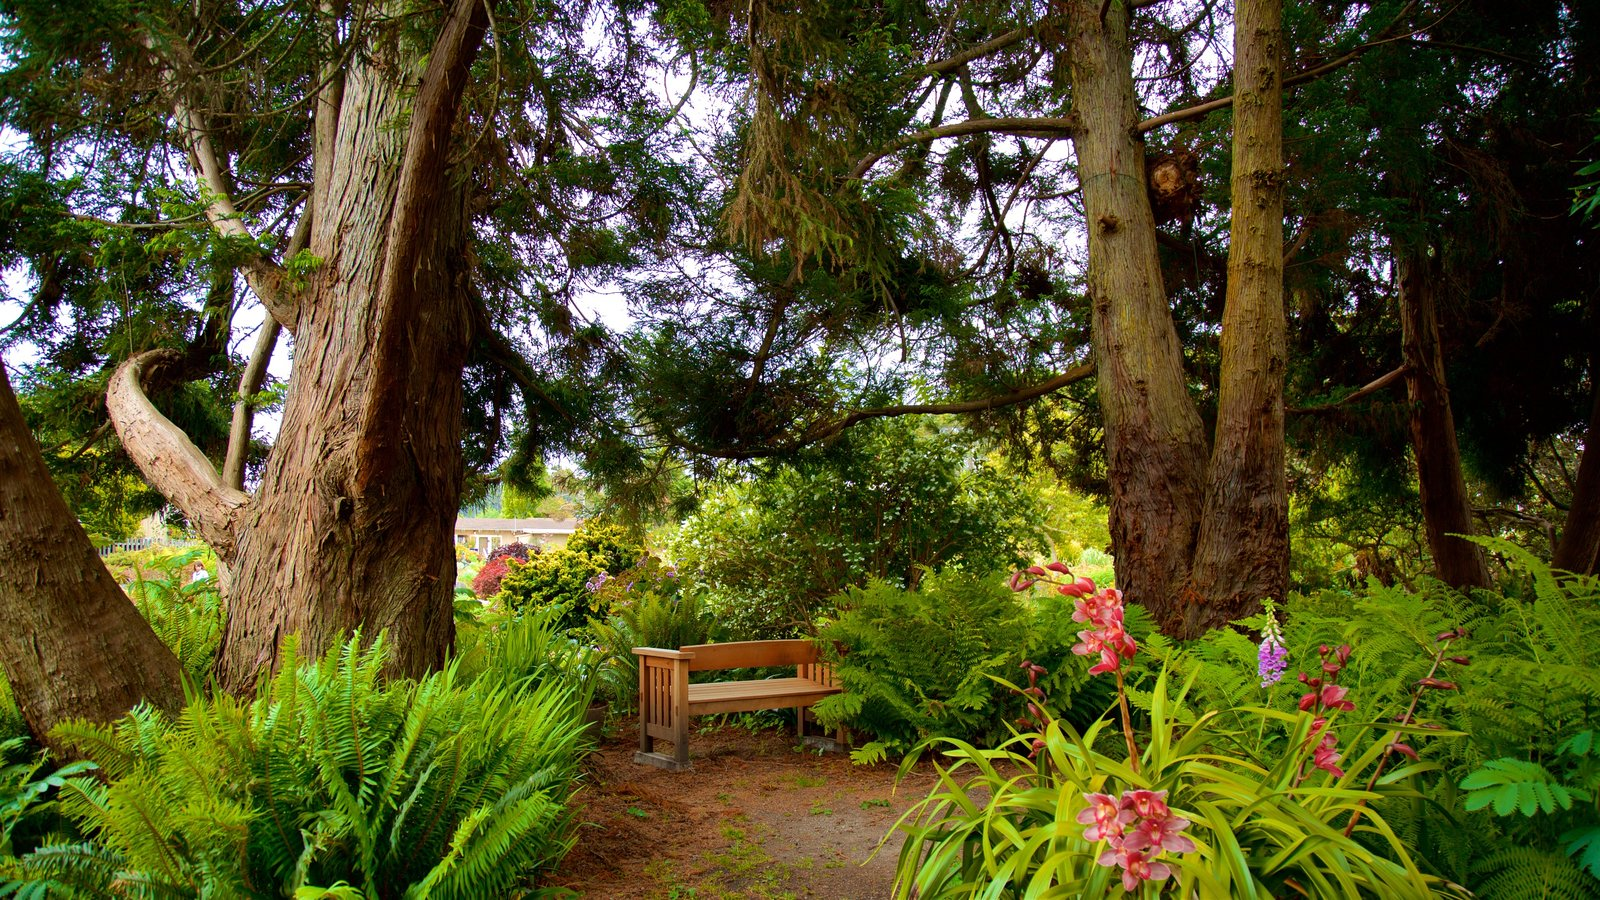 Mendocino Coast Botanical Gardens Which Includes Wildflowers And A Garden